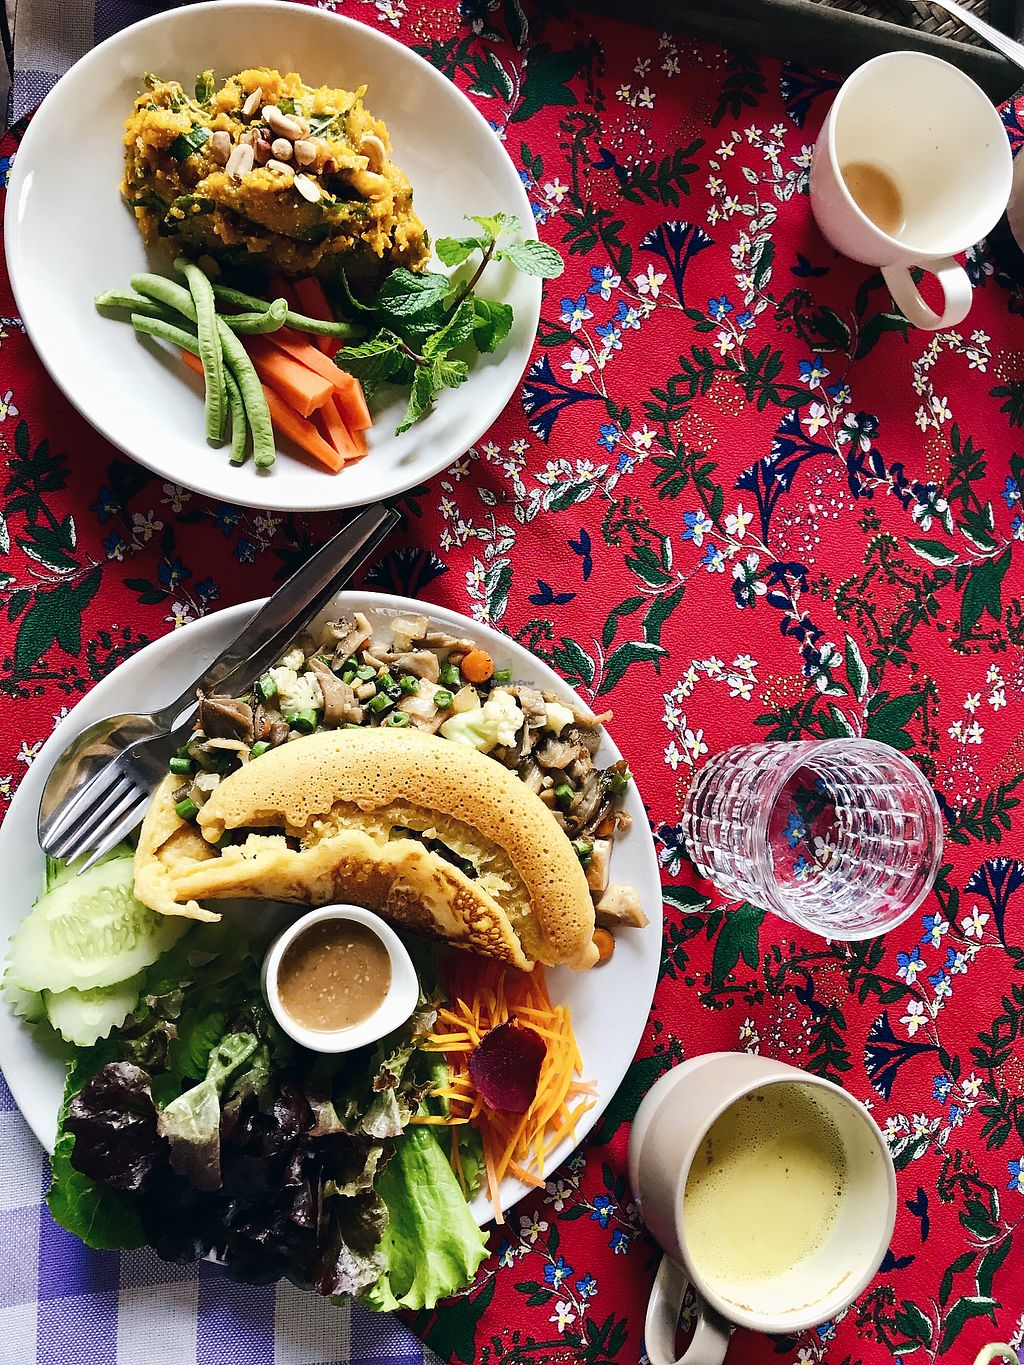 """Photo of Little Good Things  by <a href=""""/members/profile/sinasamira"""">sinasamira</a> <br/>Chickpea omlette and pumpkin hummus <br/> March 2, 2018  - <a href='/contact/abuse/image/85437/365780'>Report</a>"""